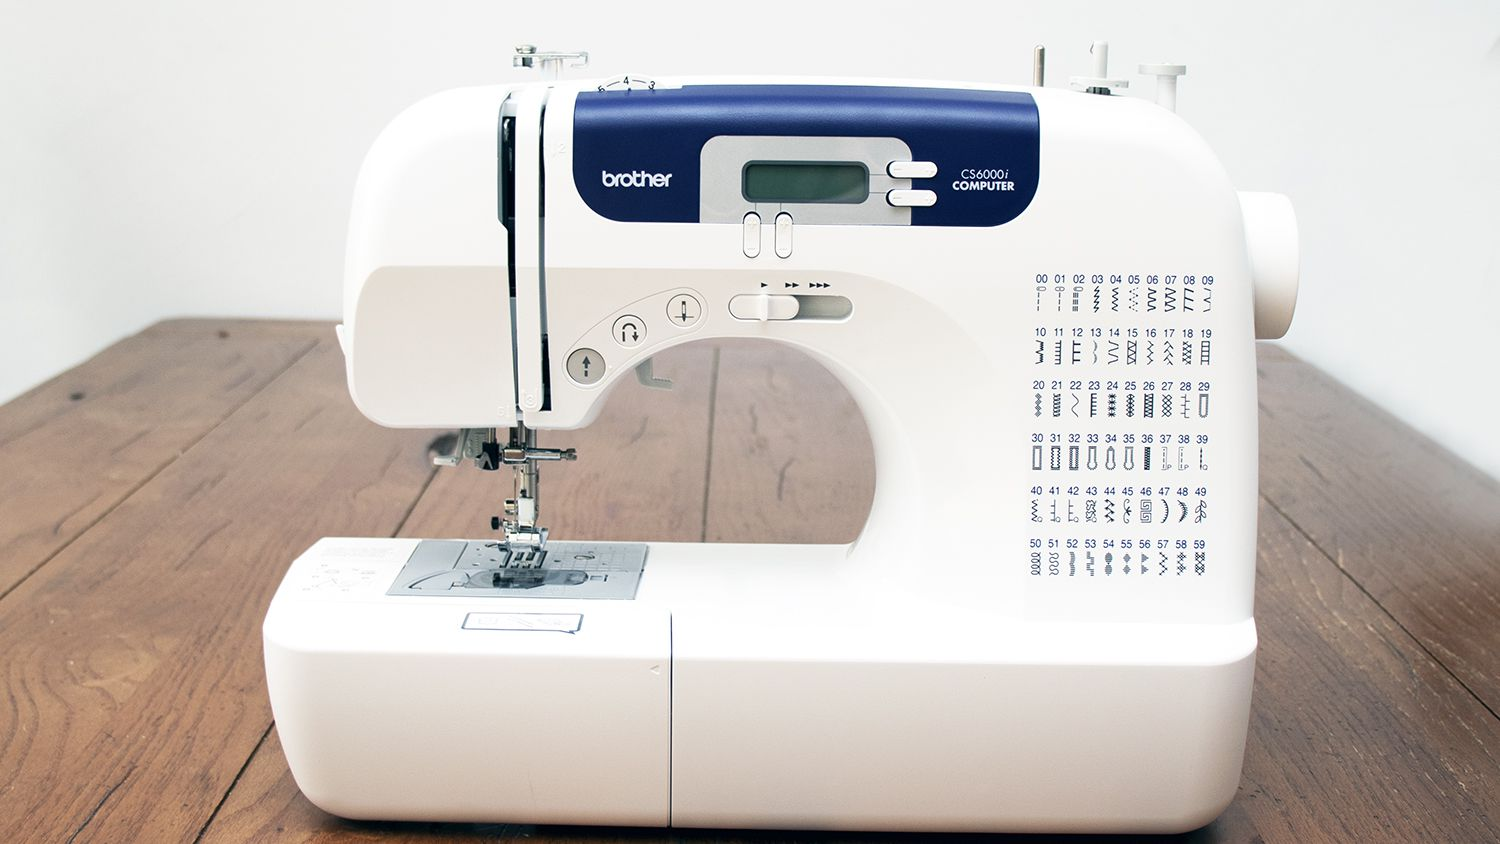 Brother CS6000i Sewing Machine: Feature-Packed and Affordable